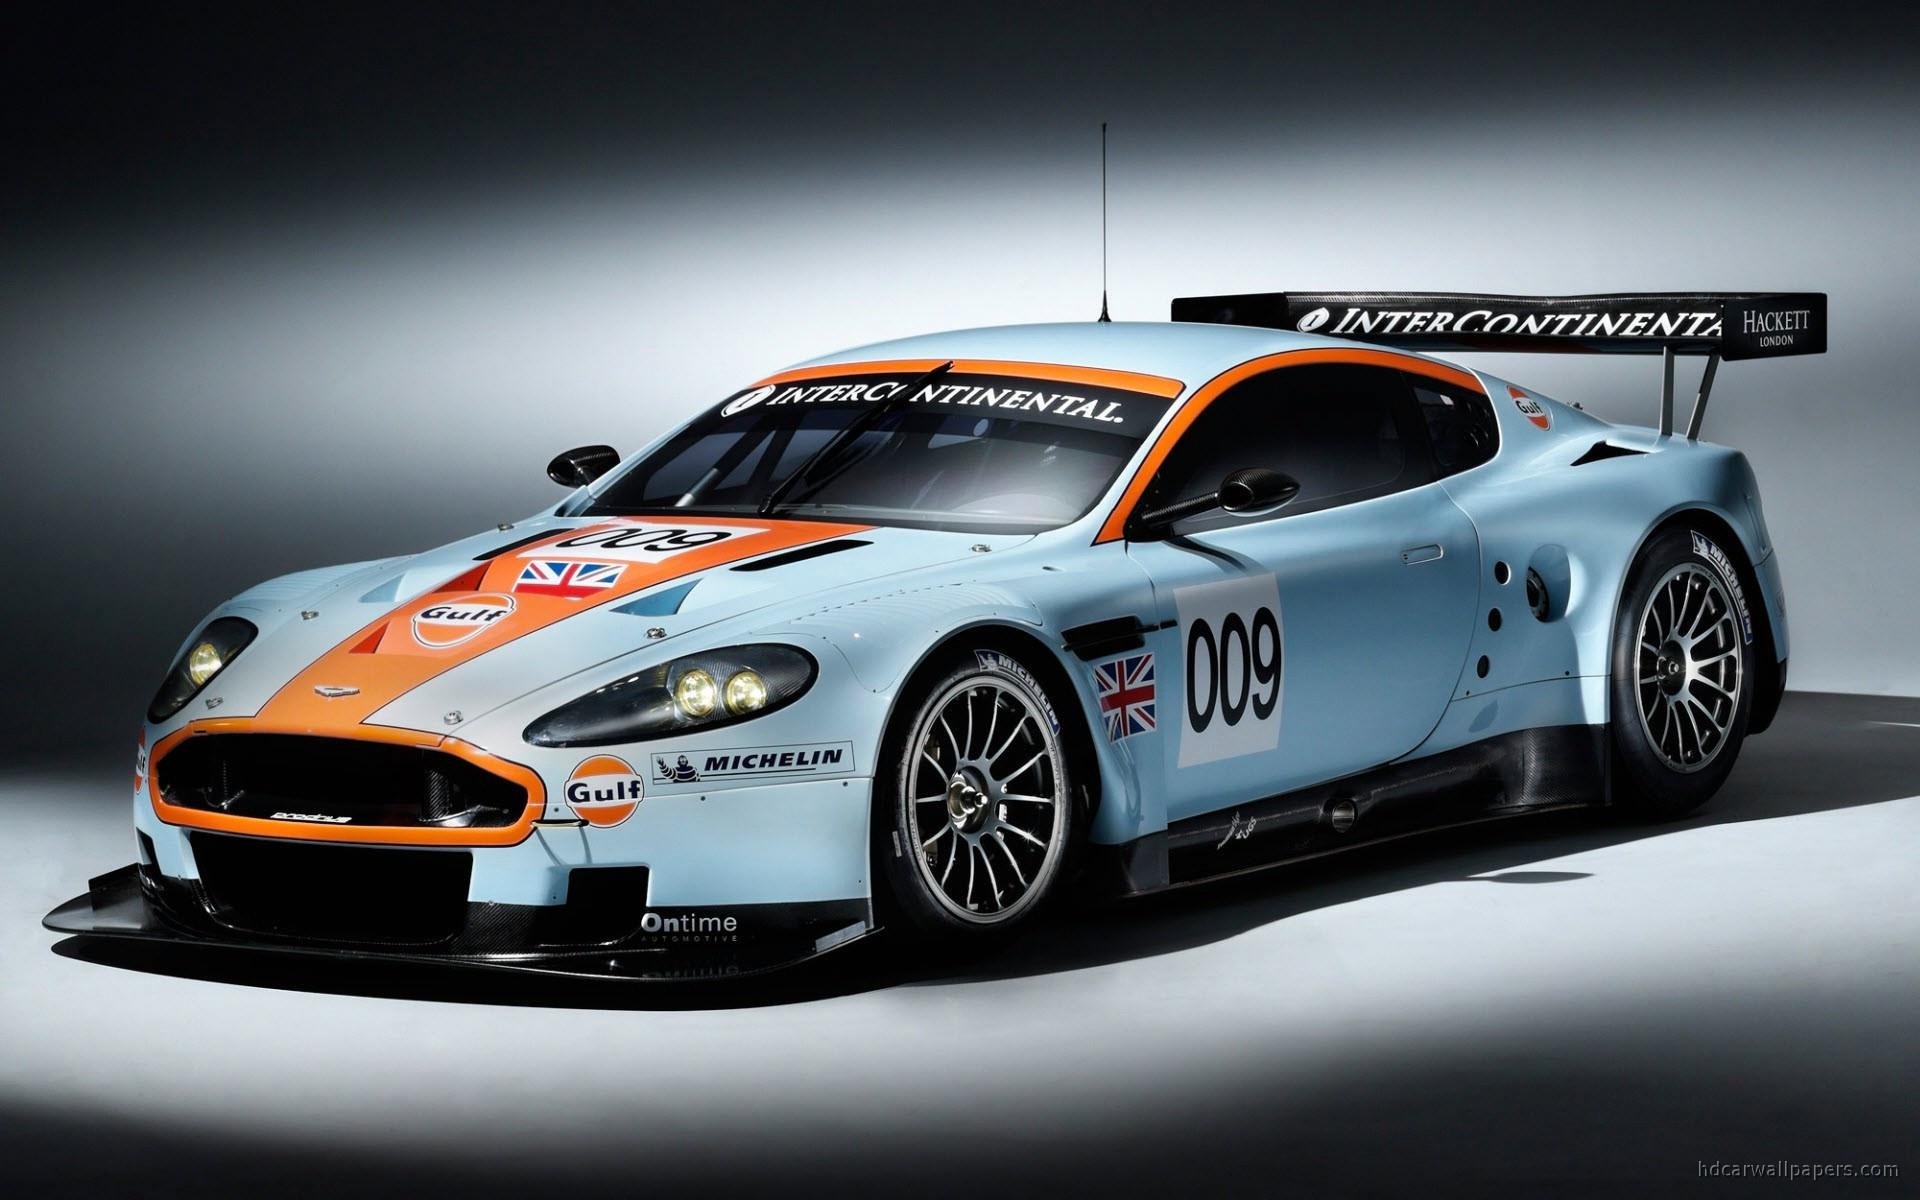 2008 Gulf Aston Martin Wallpaper HD Car Wallpapers 1920x1200